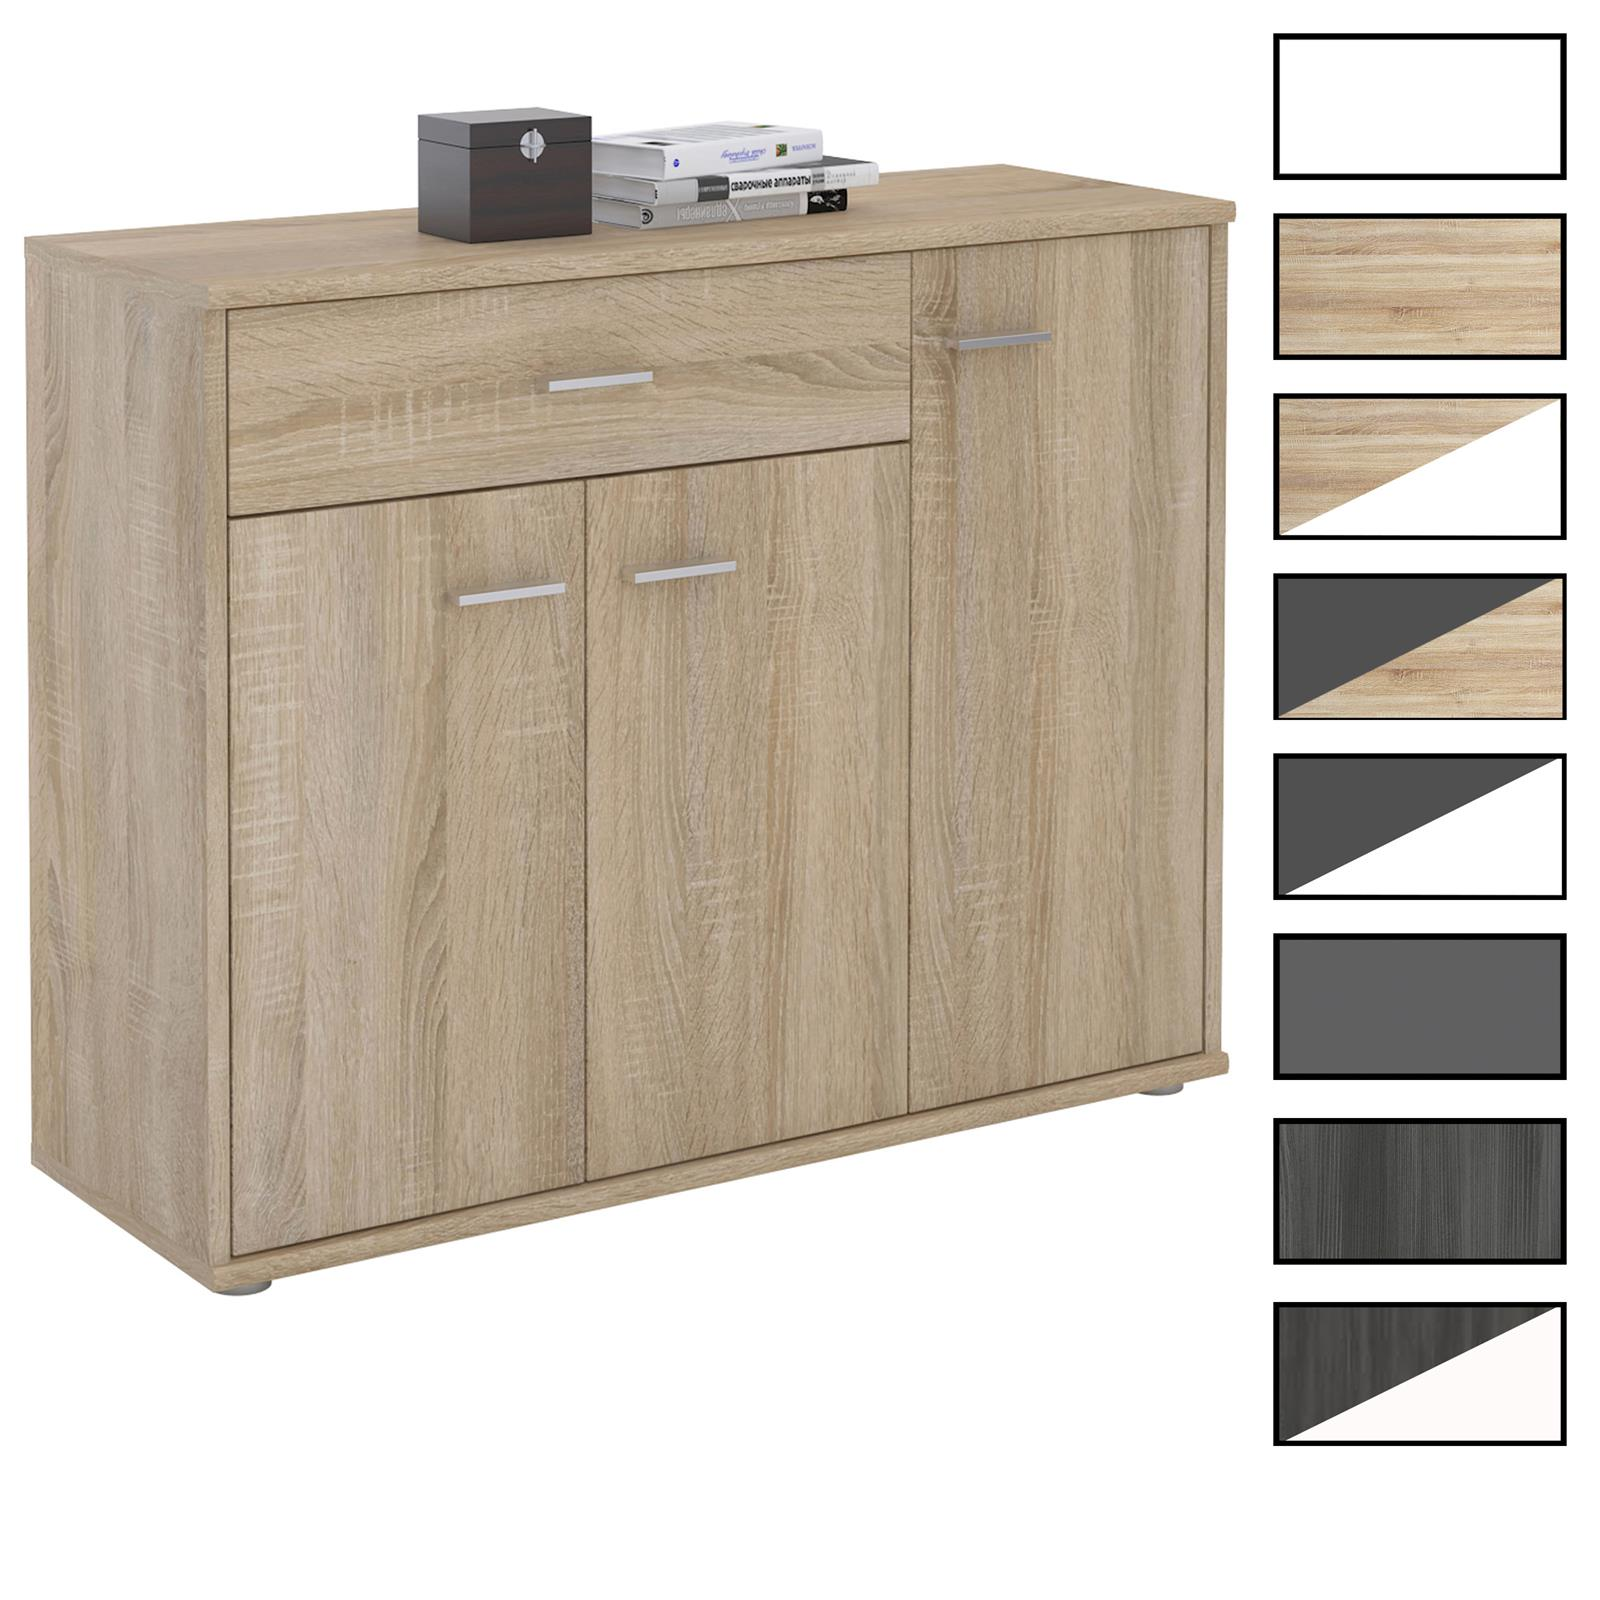 kommode sideboard mehrzweckschrank 3 t ren und 1. Black Bedroom Furniture Sets. Home Design Ideas